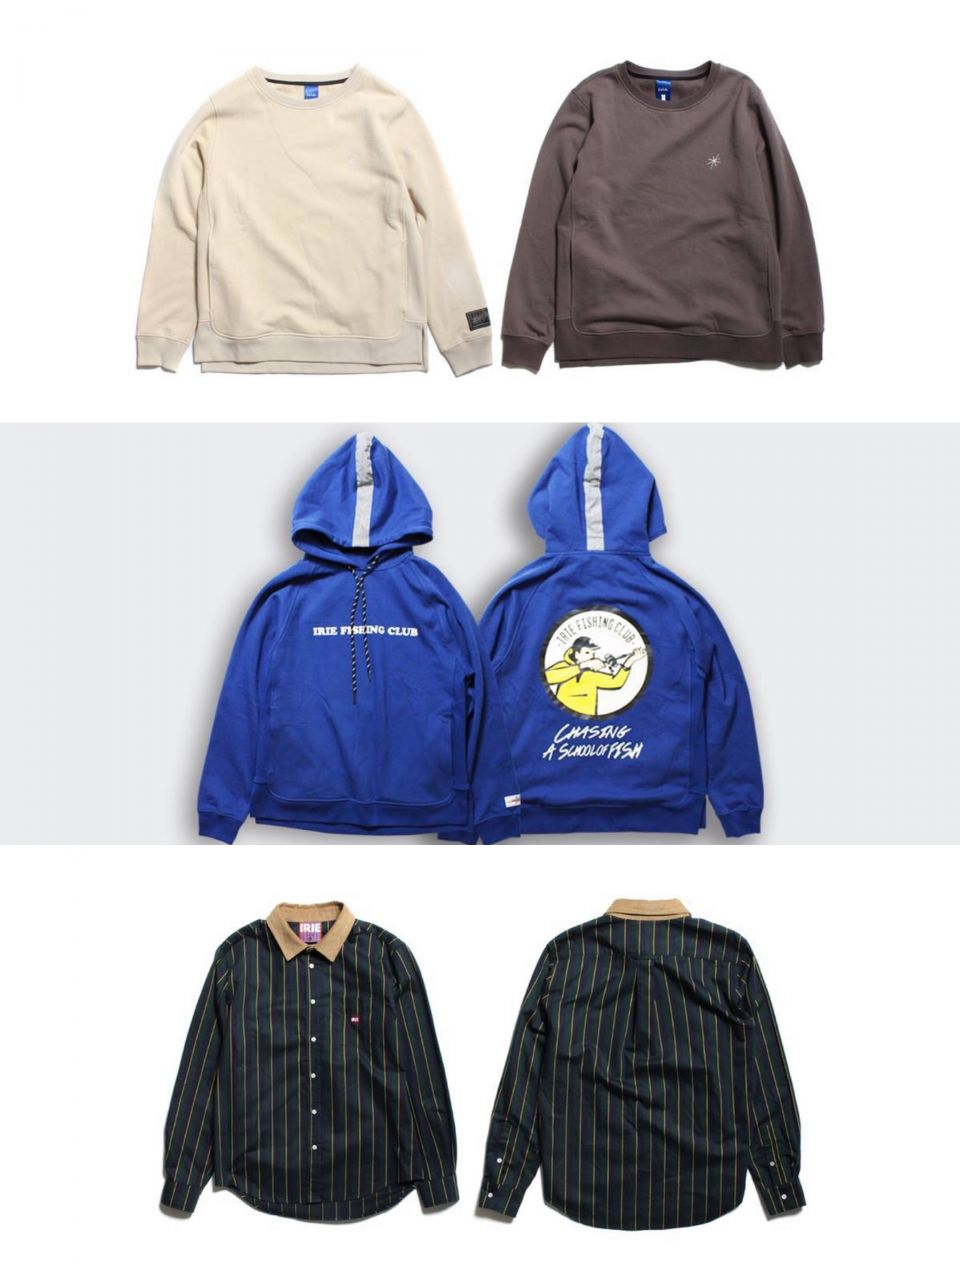 -NEW ARRIVAL-